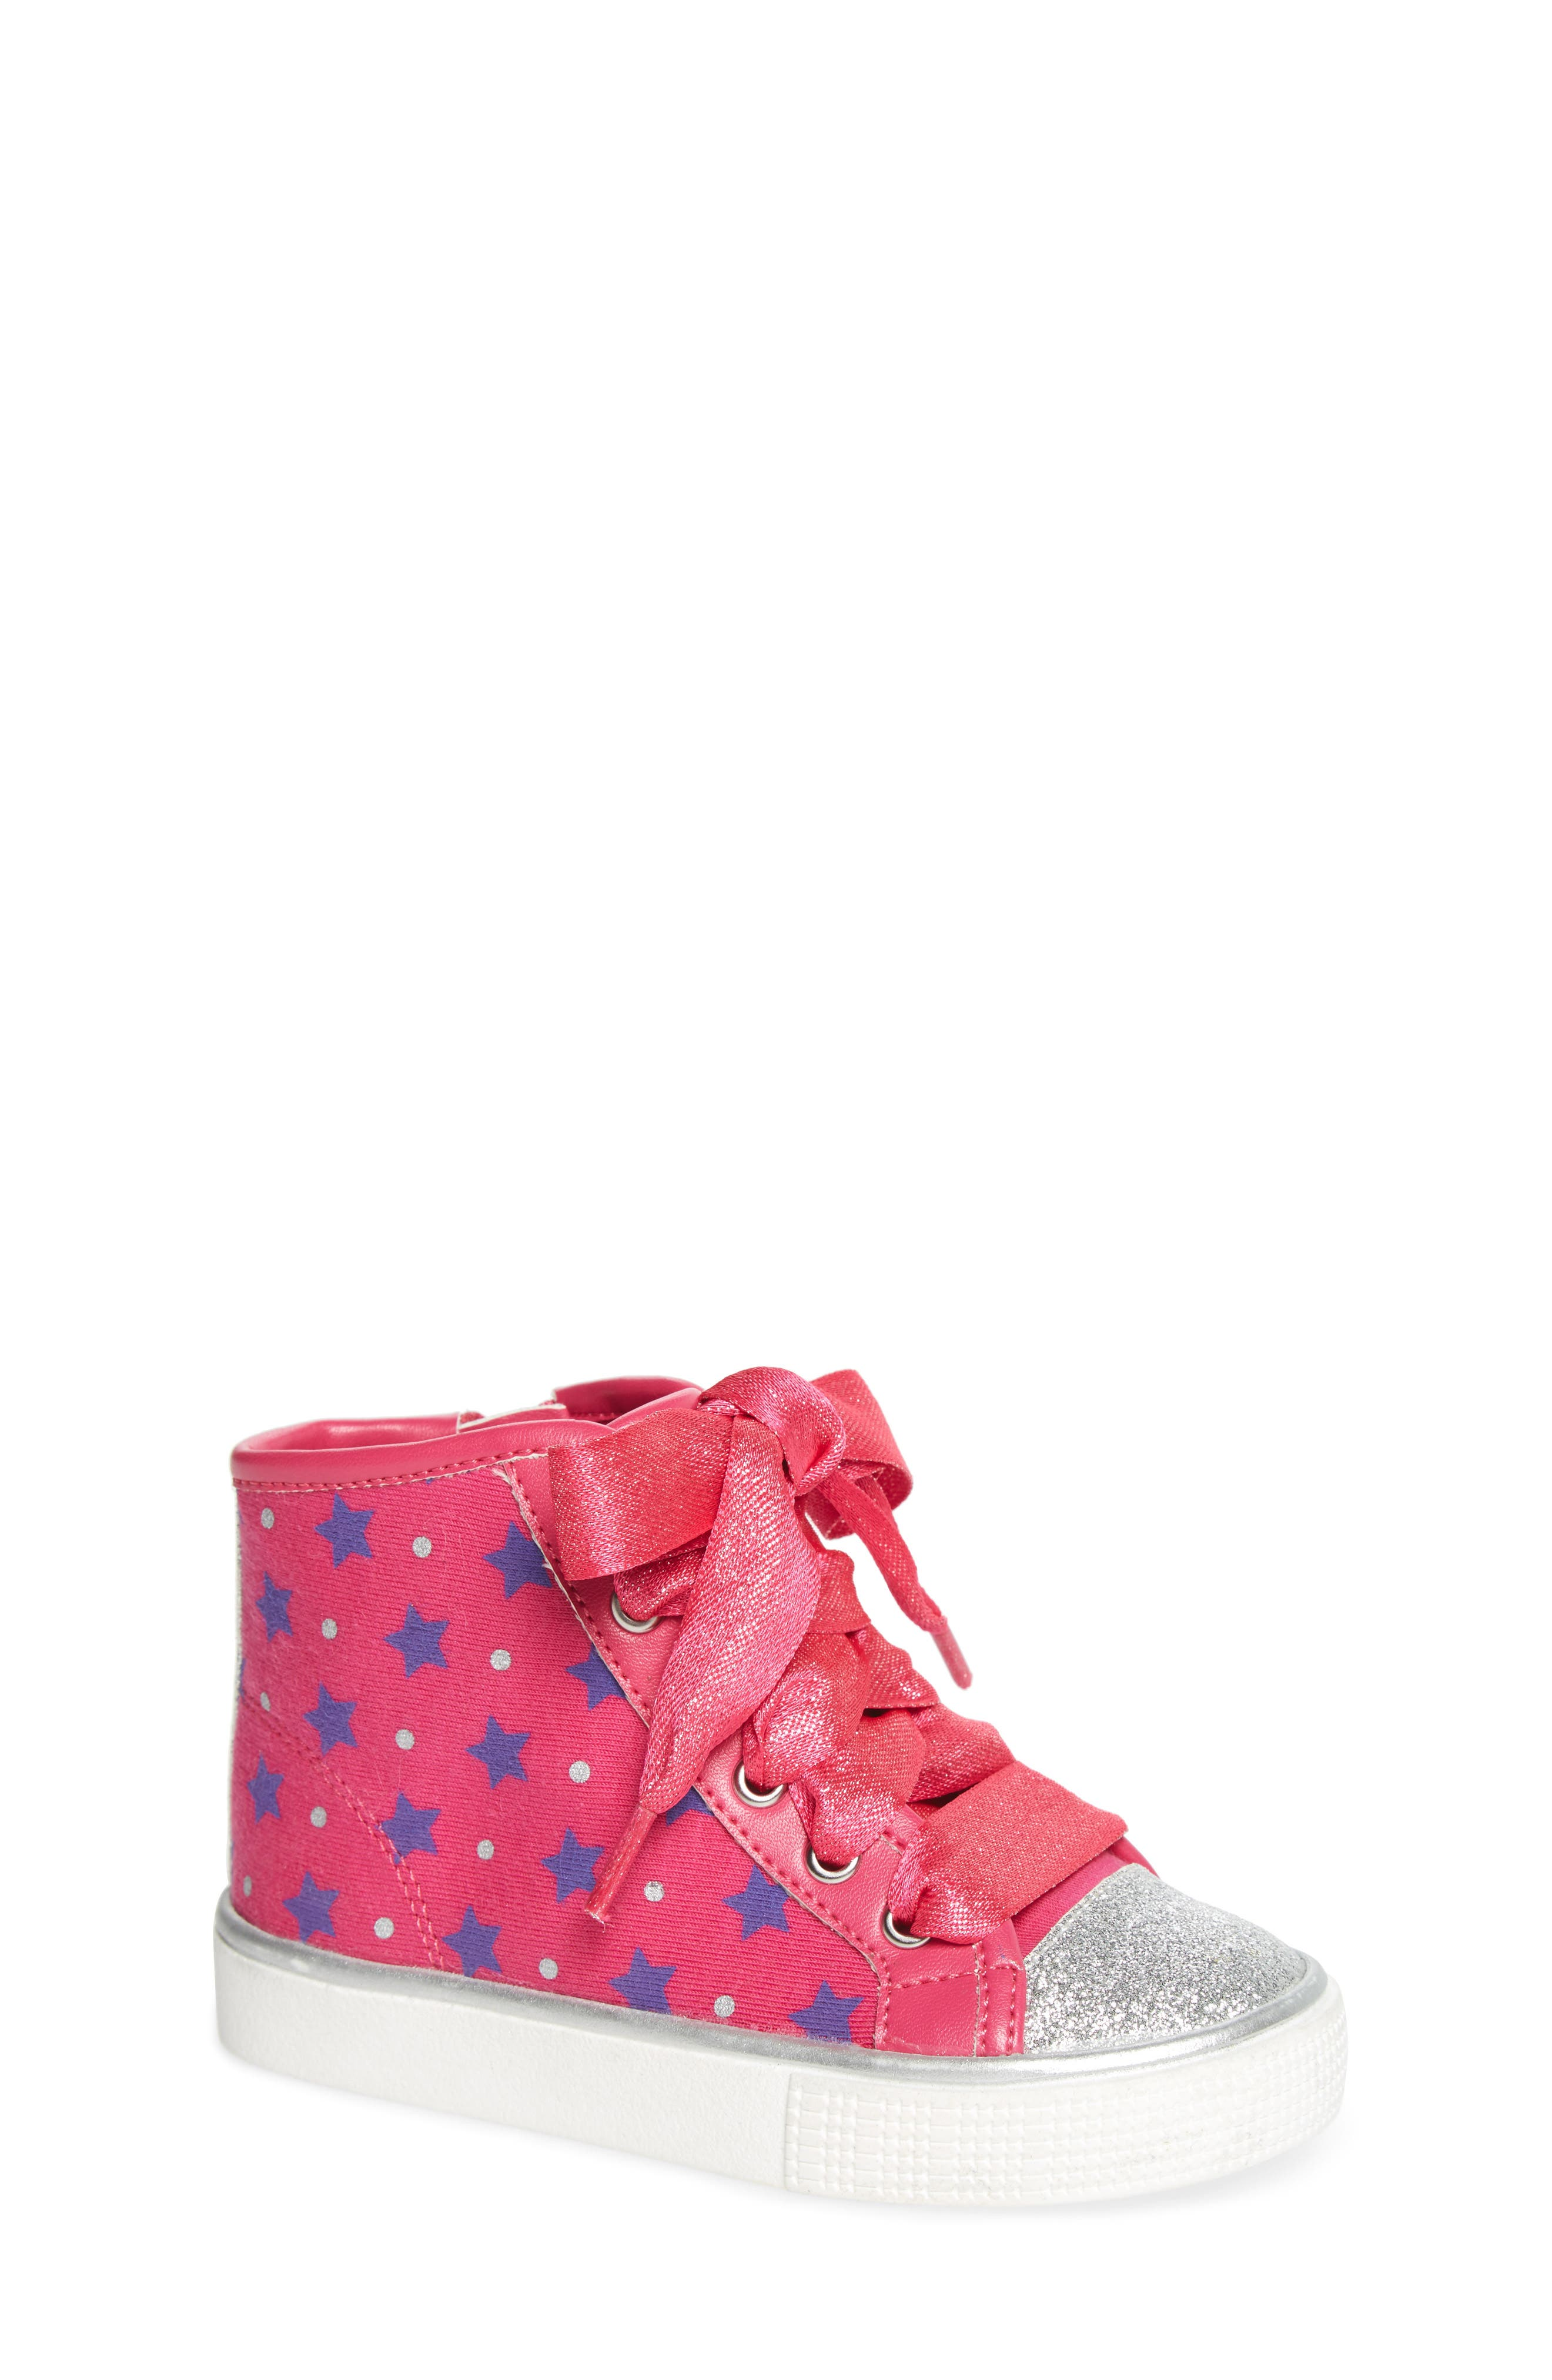 Emerson High Top Sneaker,                         Main,                         color, Pink/ Purple